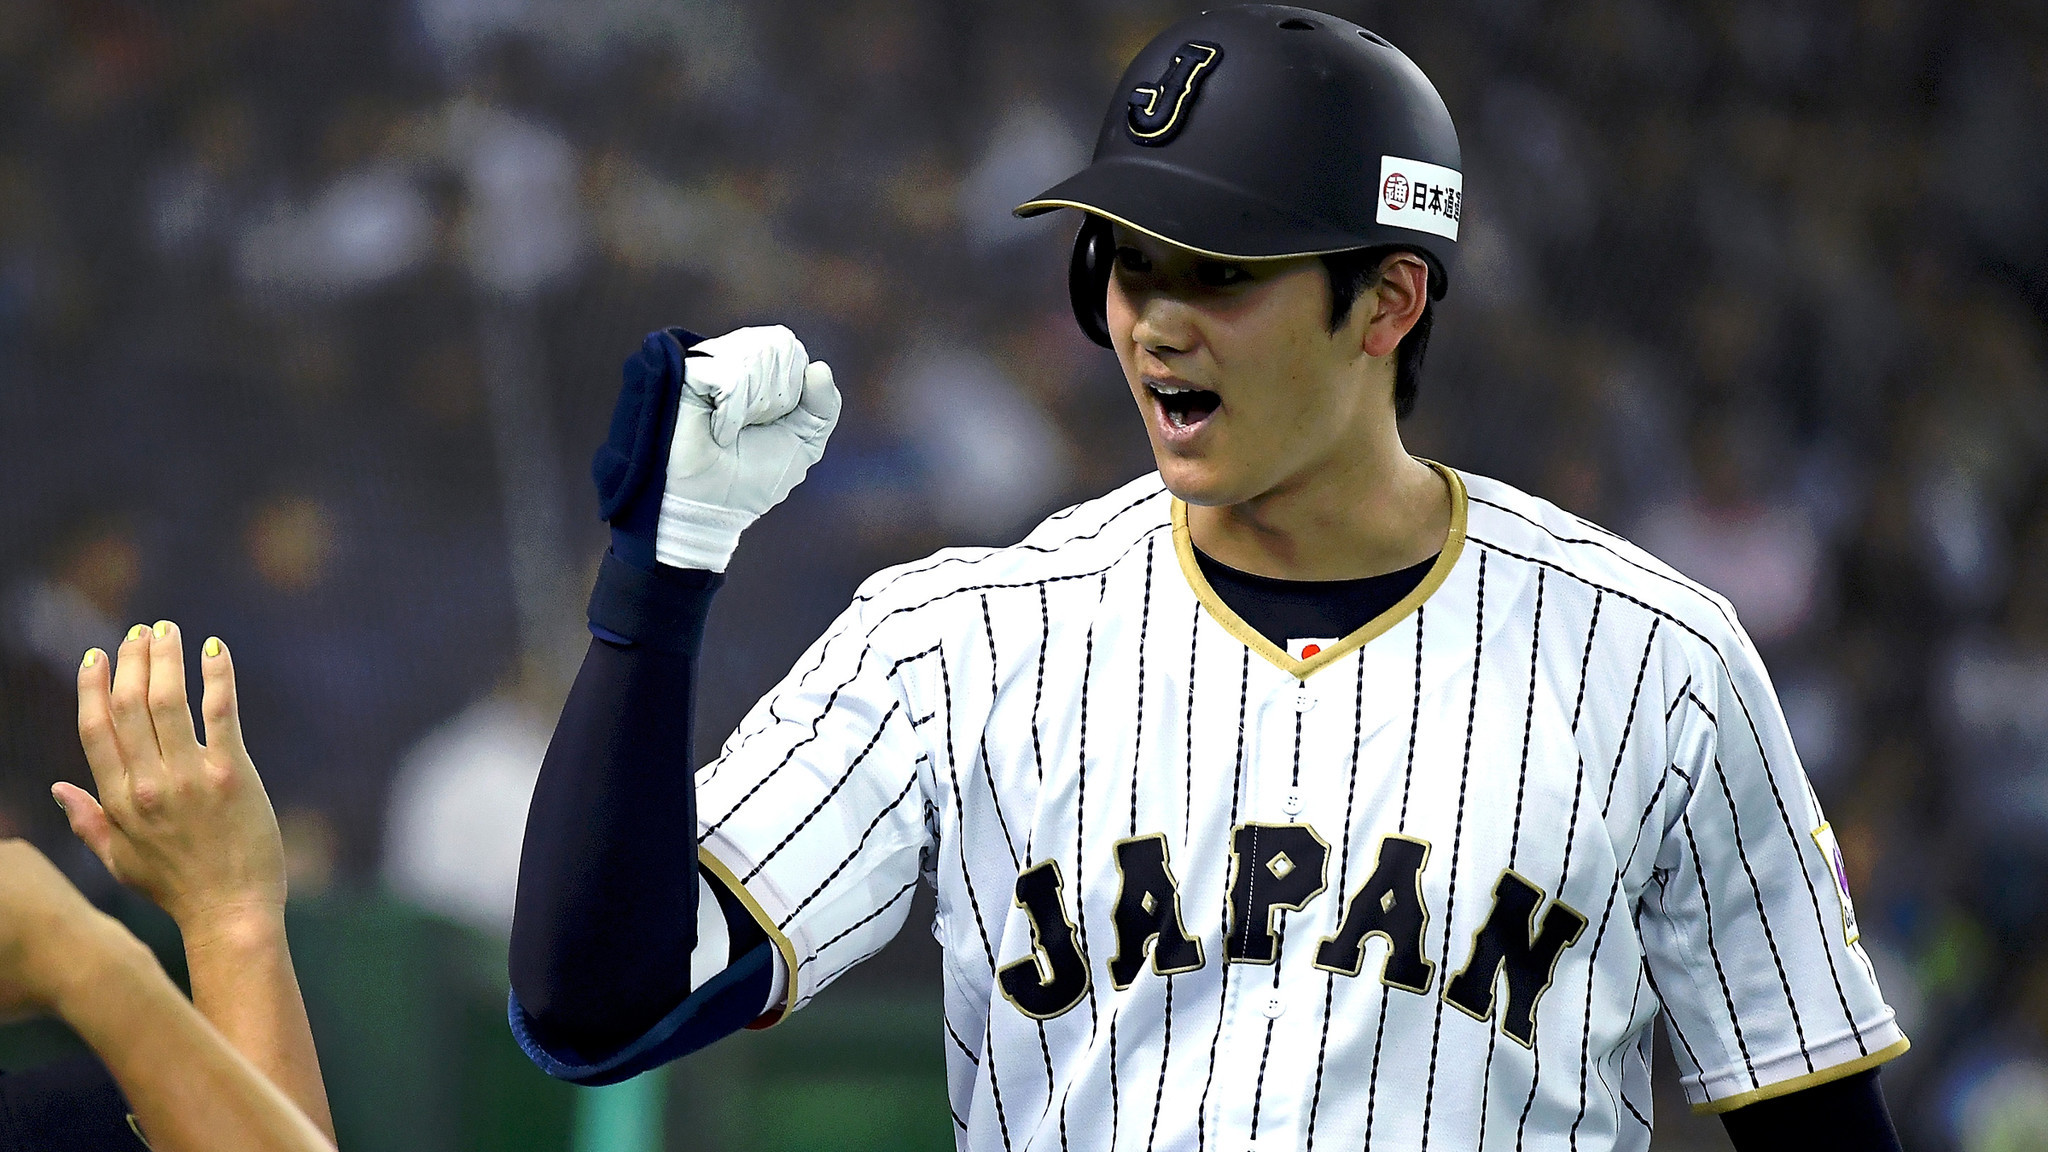 Dodgers Dugout: What are the odds the Dodgers get Shohei Ohtani and  Giancarlo Stanton?